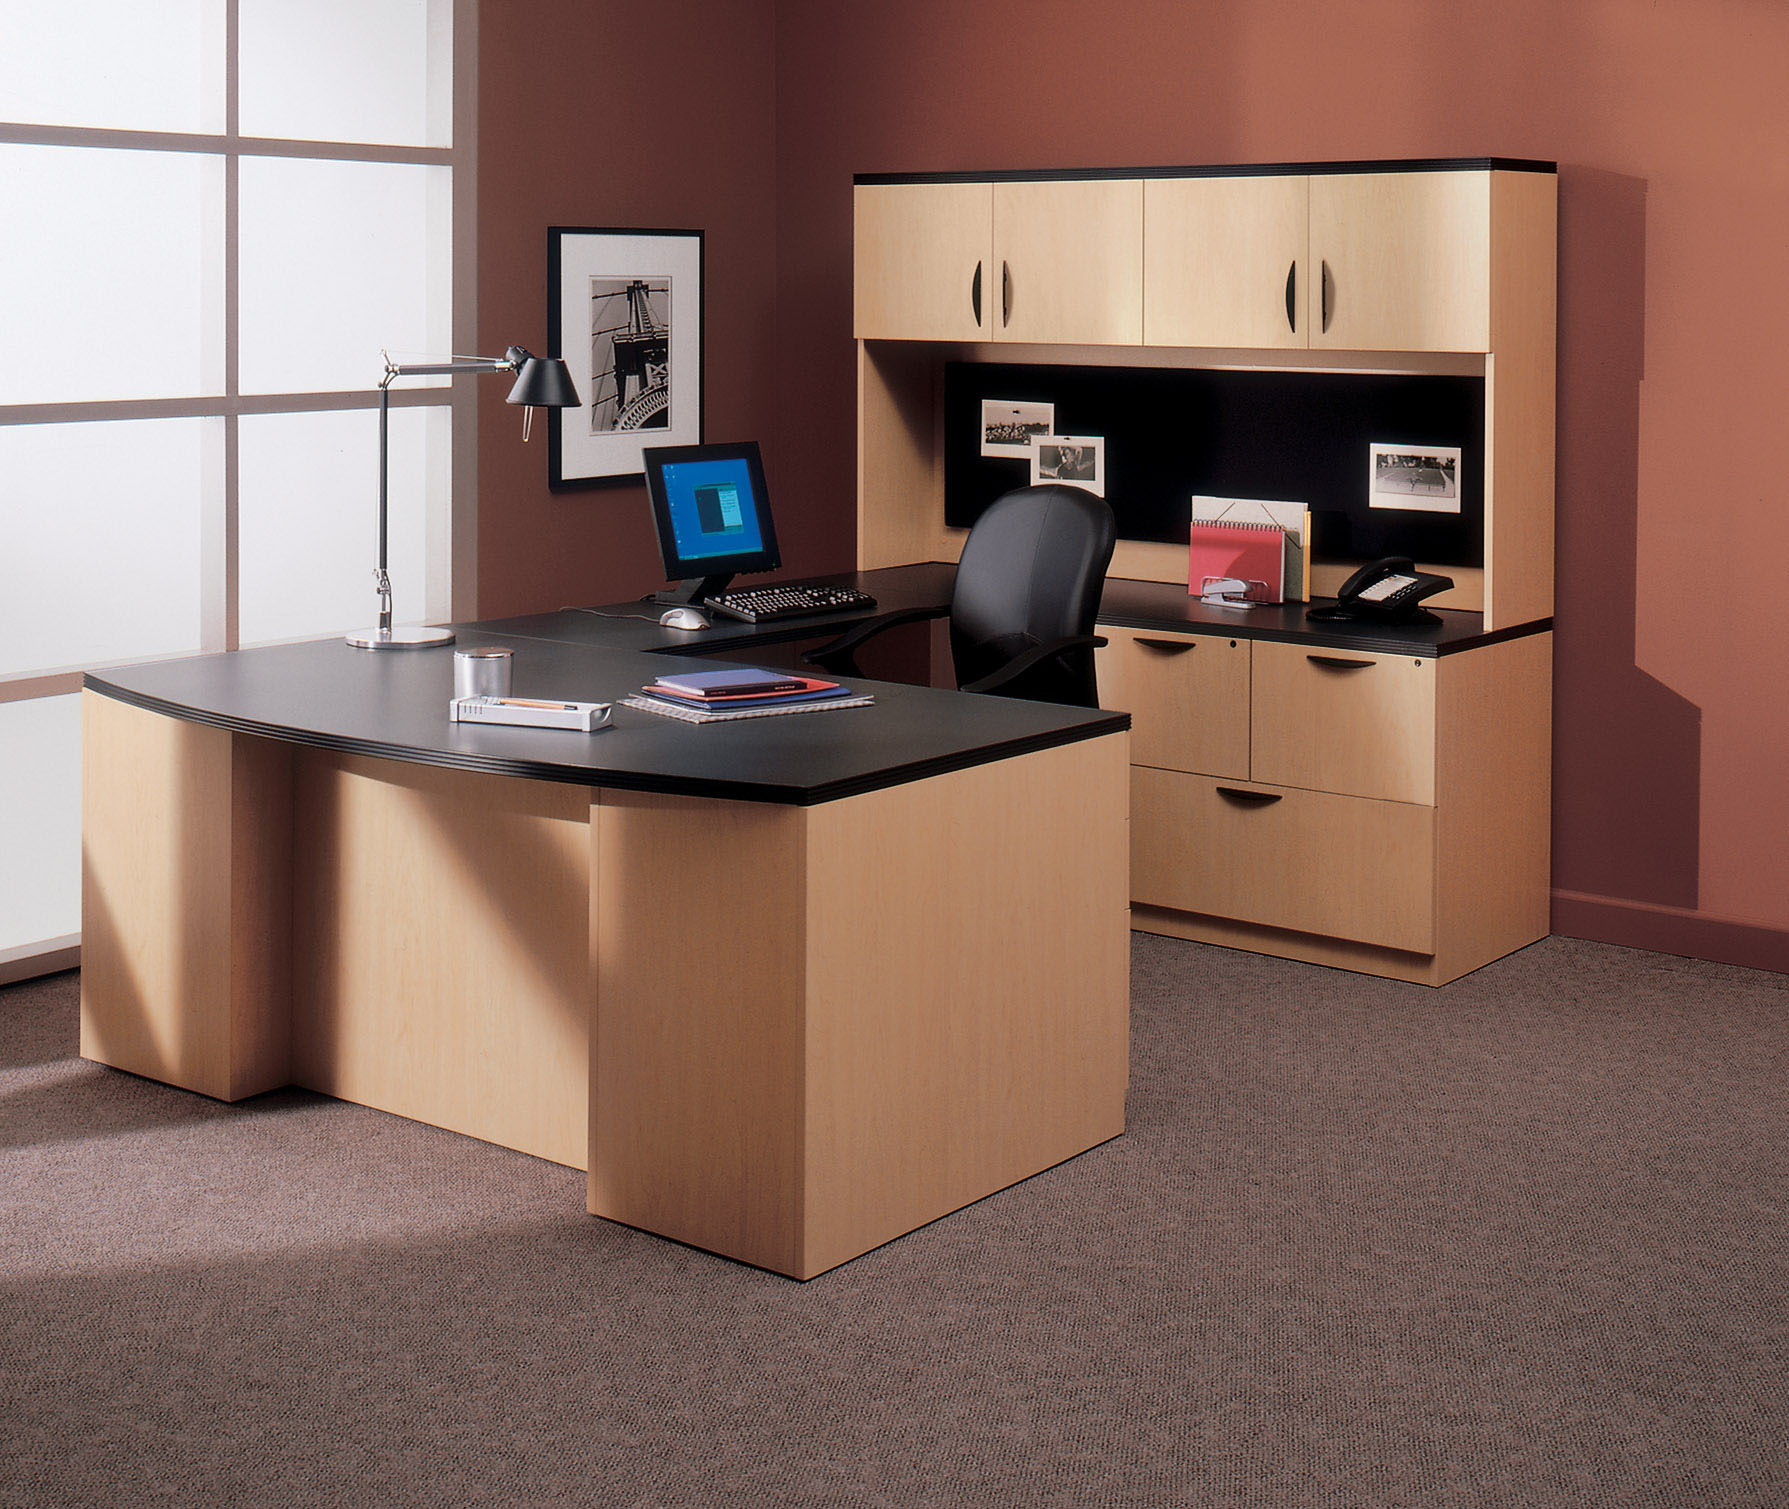 office furniture pics. office furniture office furniture pics e